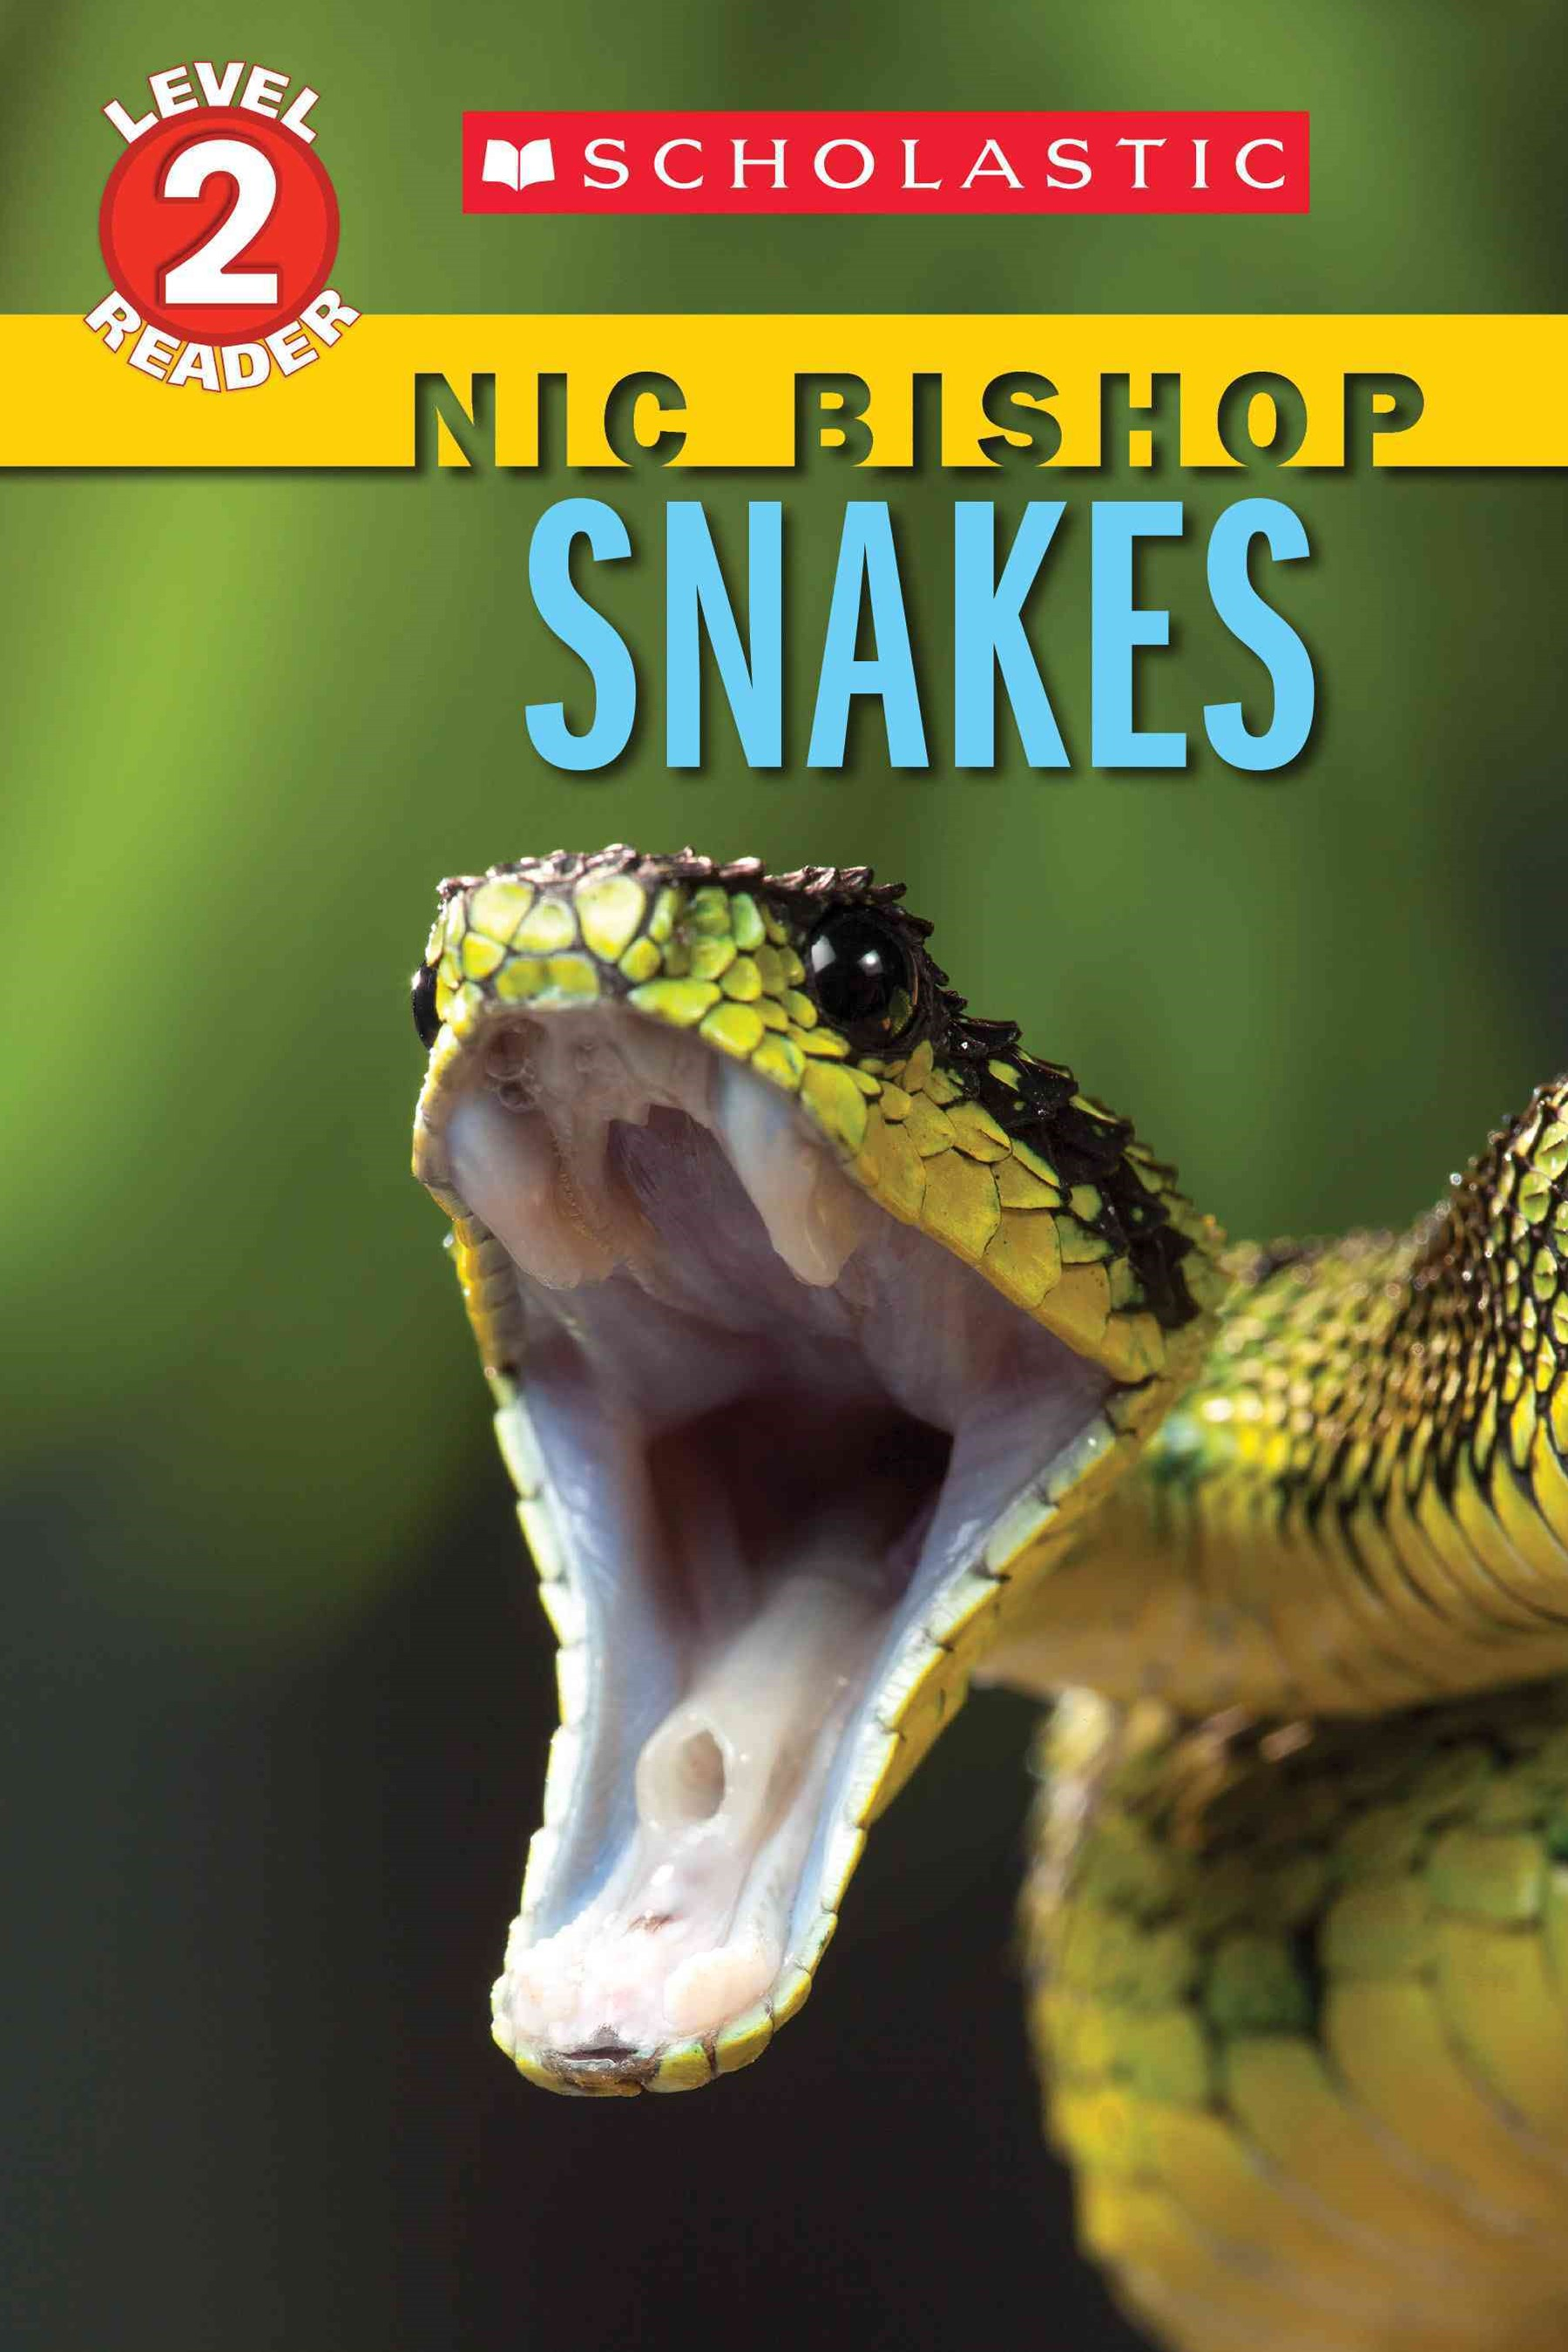 Snakes (Scholastic Reader, Level 2: Nic Bishop Reader #5)